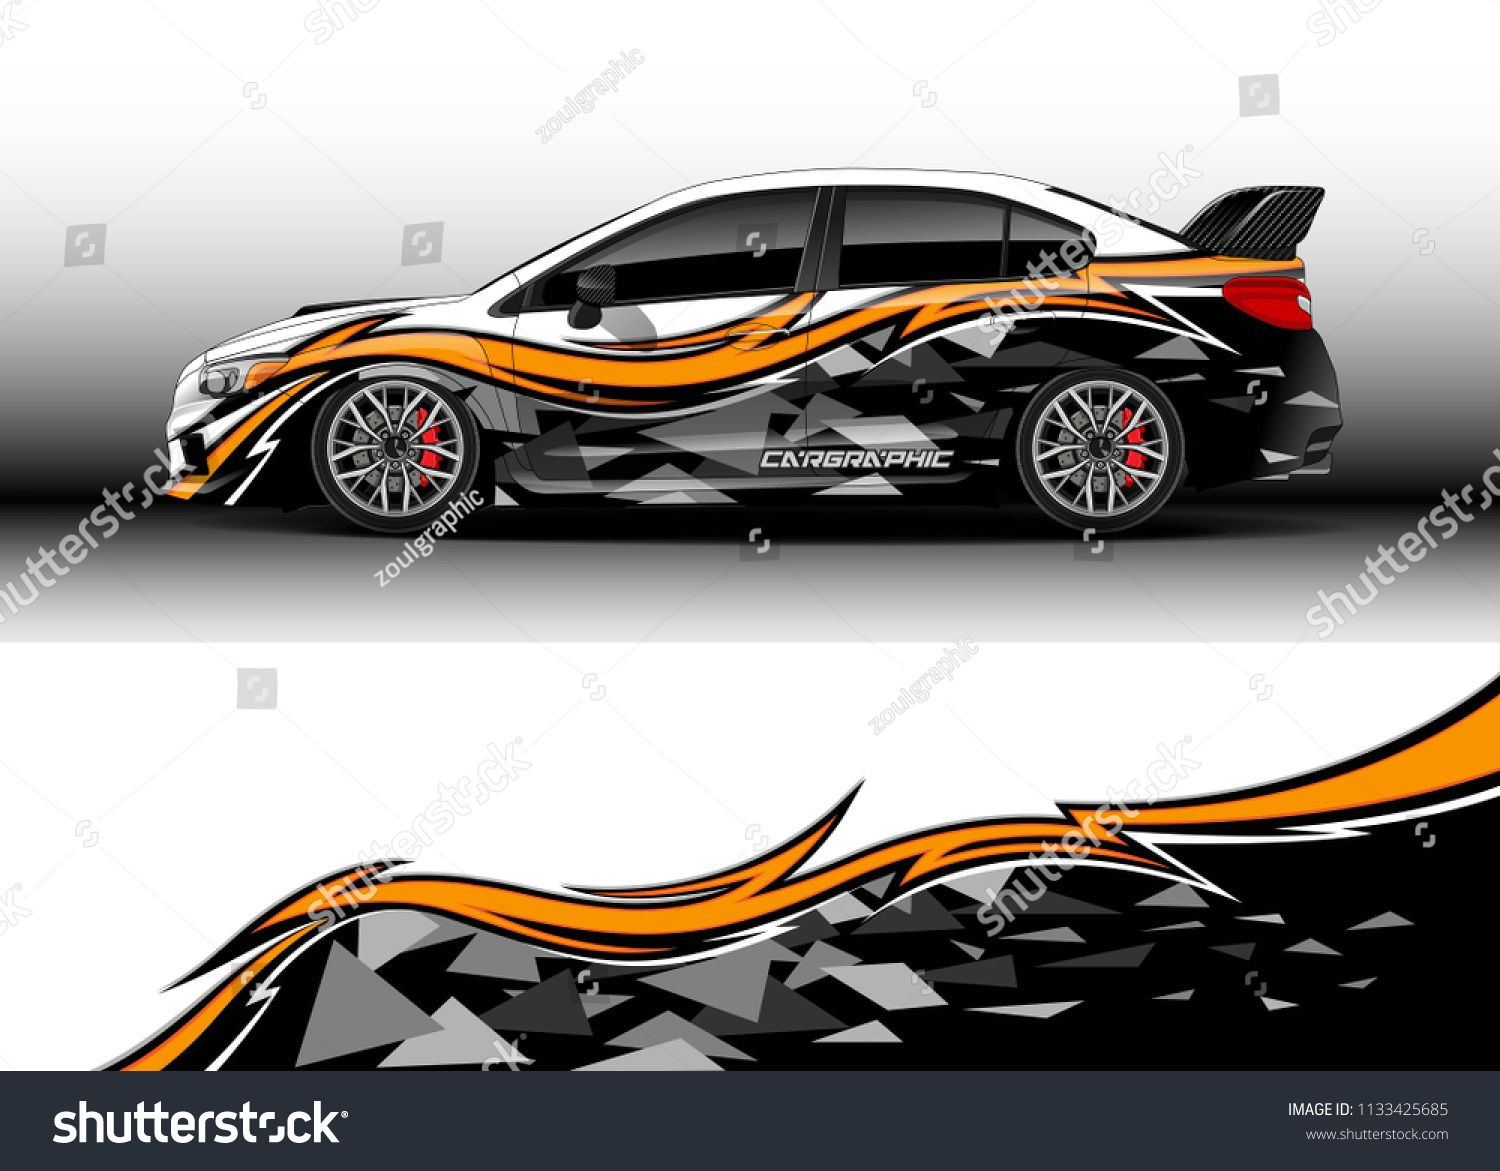 Car decal truck and cargo van wrap vector graphic abstract stripe designs for drift livery car advertisement and branding